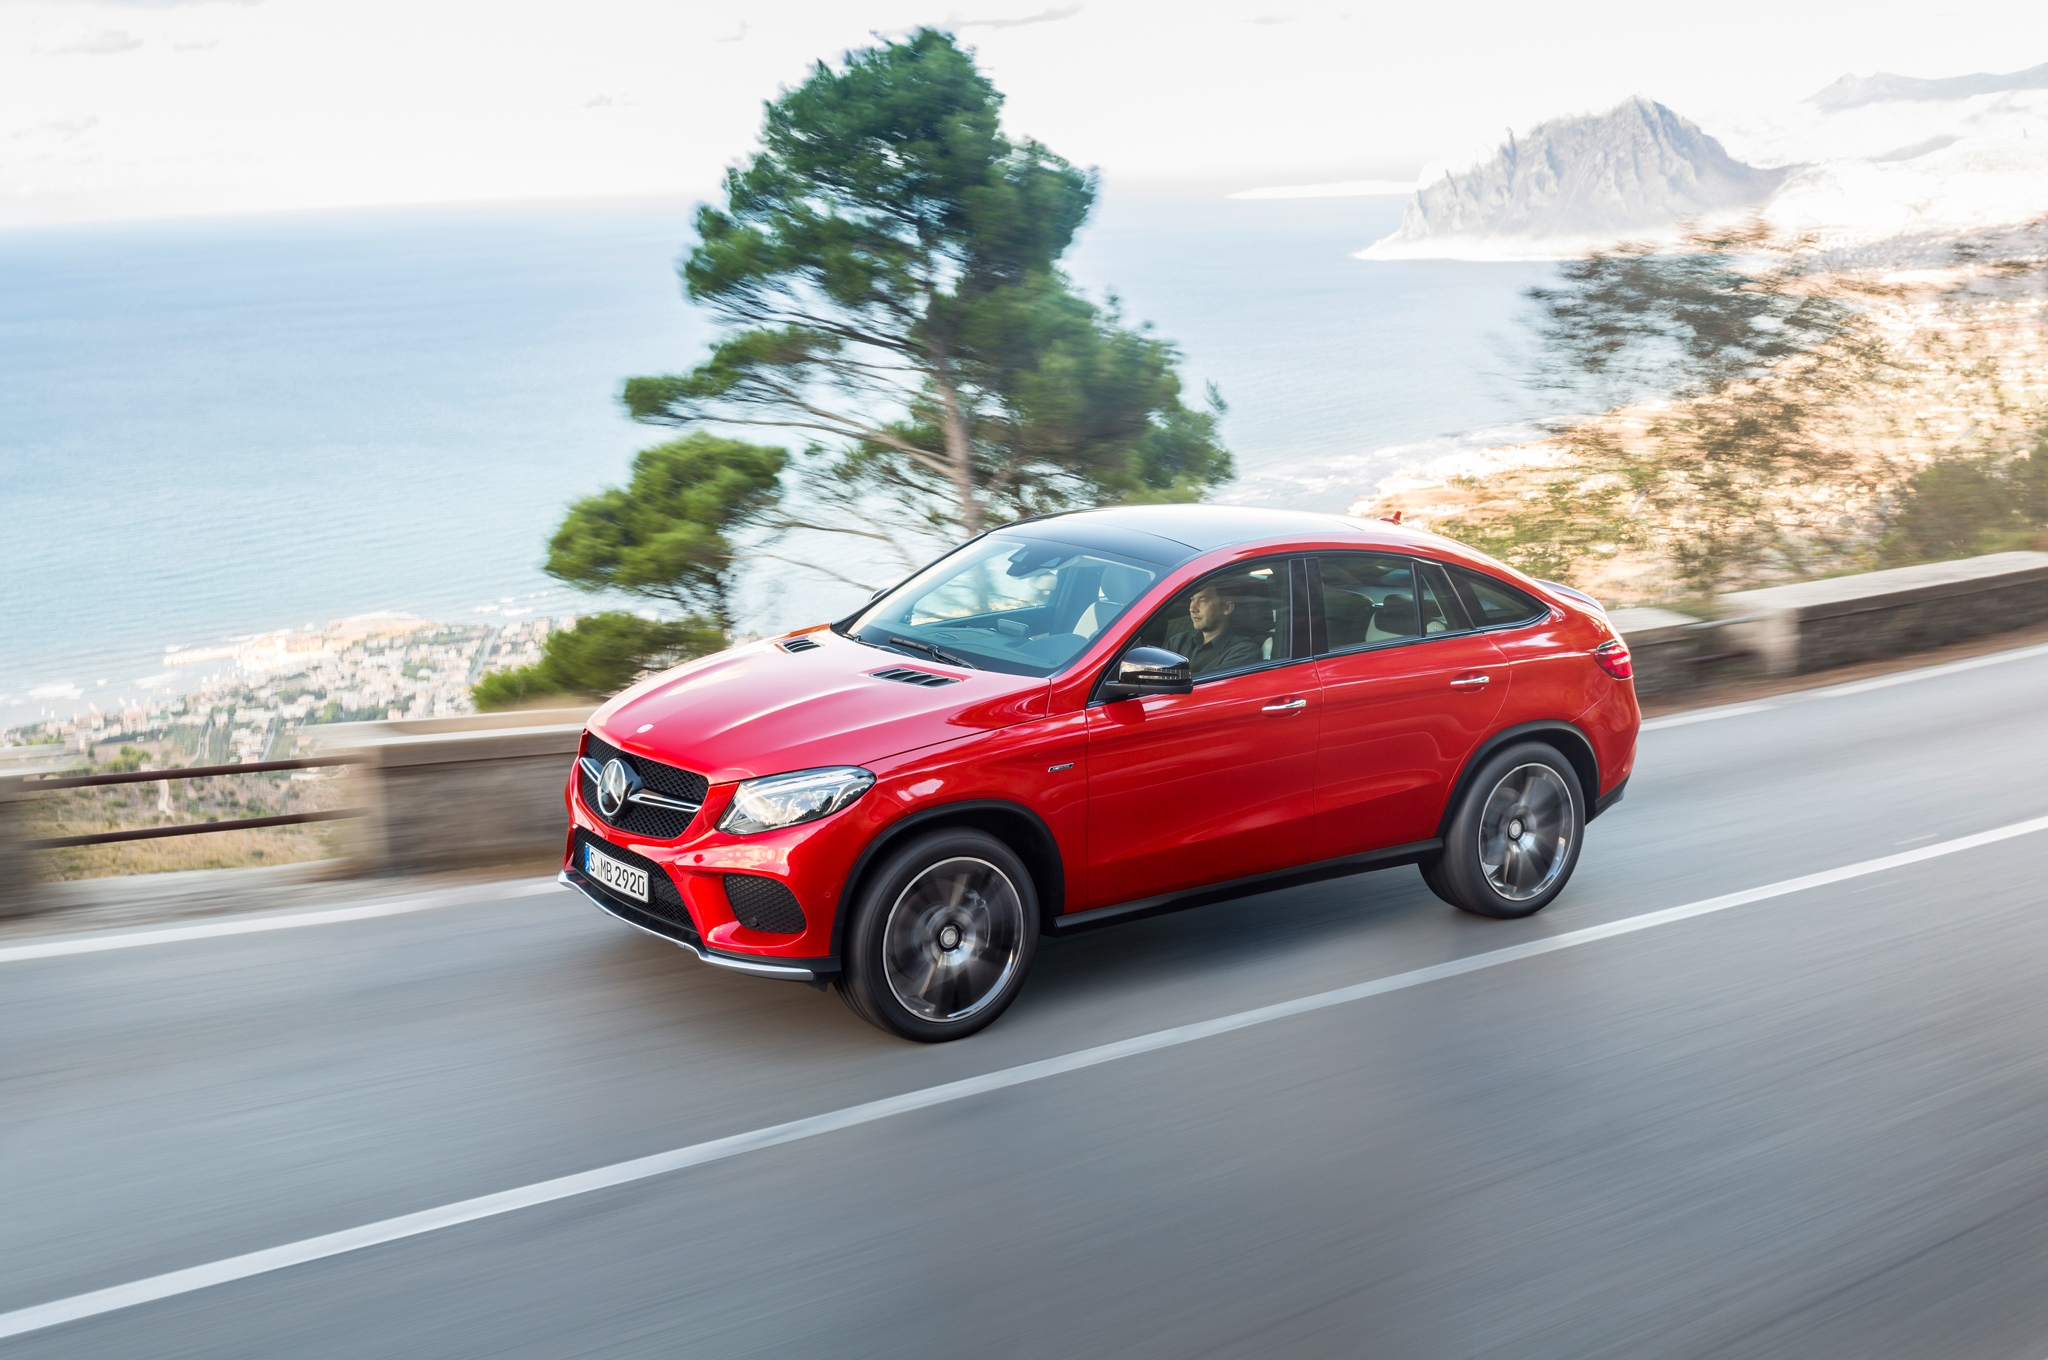 https://autowise.com/wp-content/uploads/2015/02/2016-Mercedes-Benz-GLE450-AMG-4Matic-Coupe-The-Ultimate.jpg